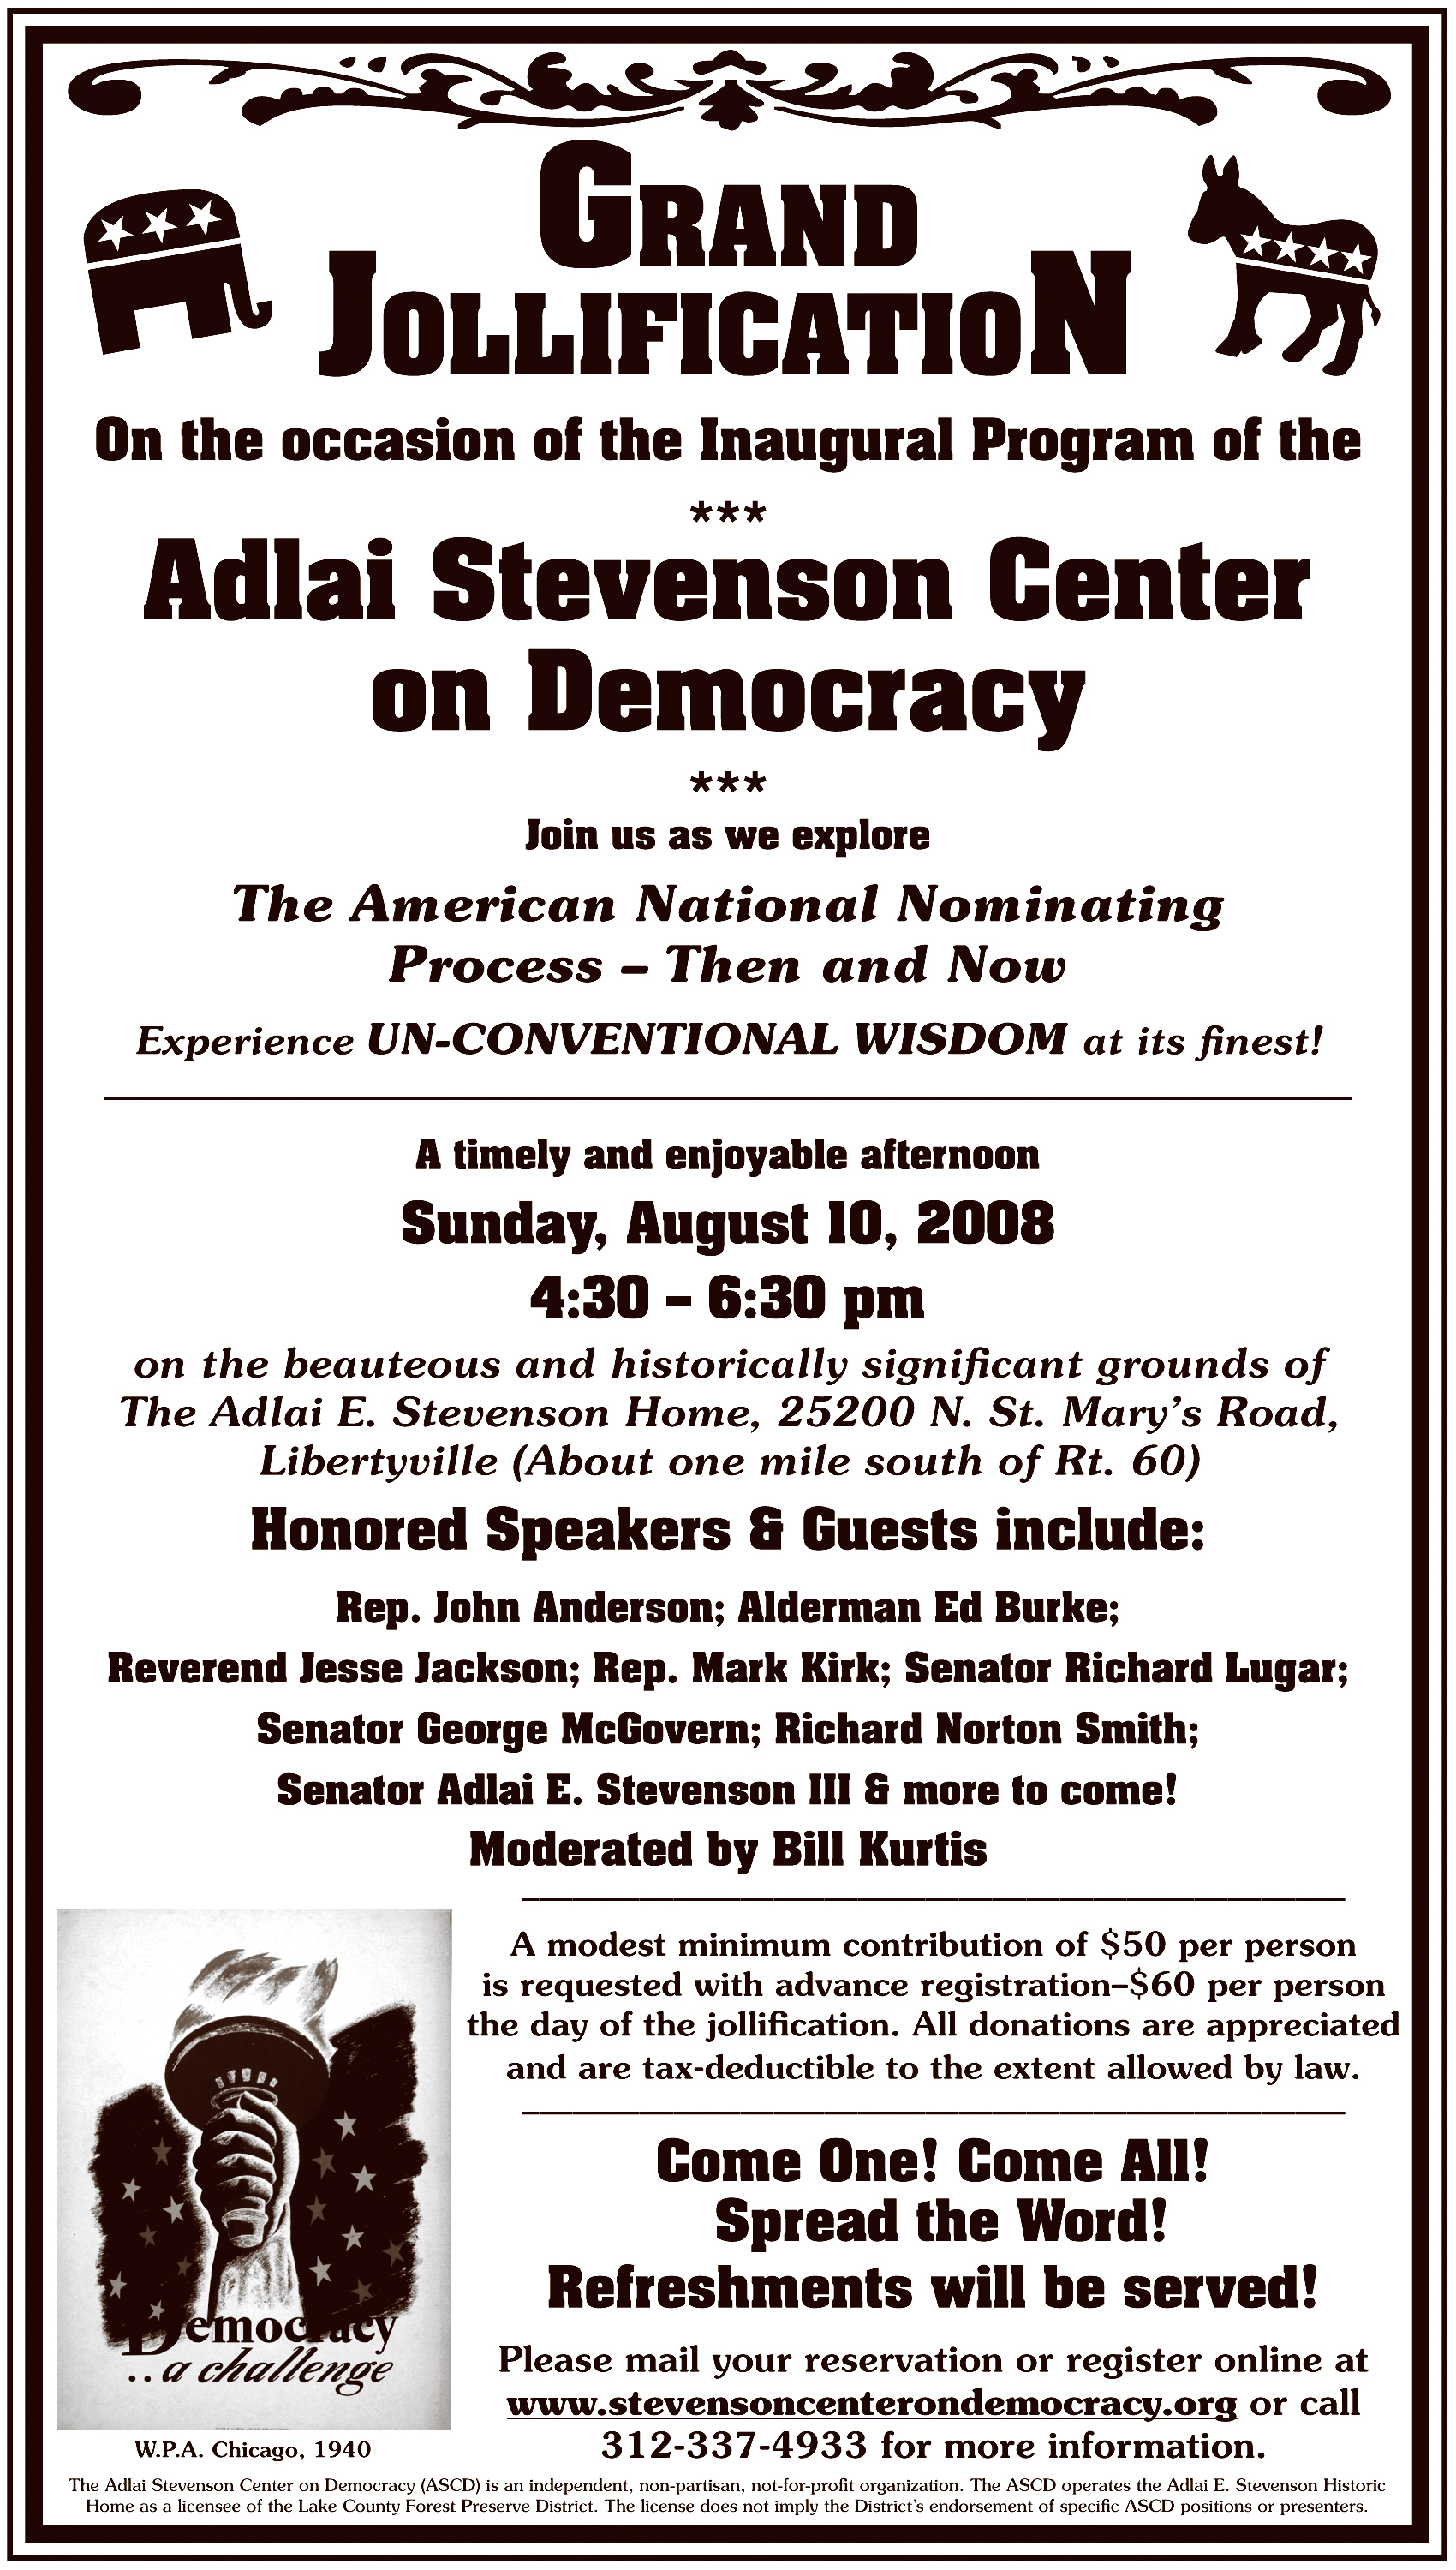 Adlai Stevenson Center on Democracy